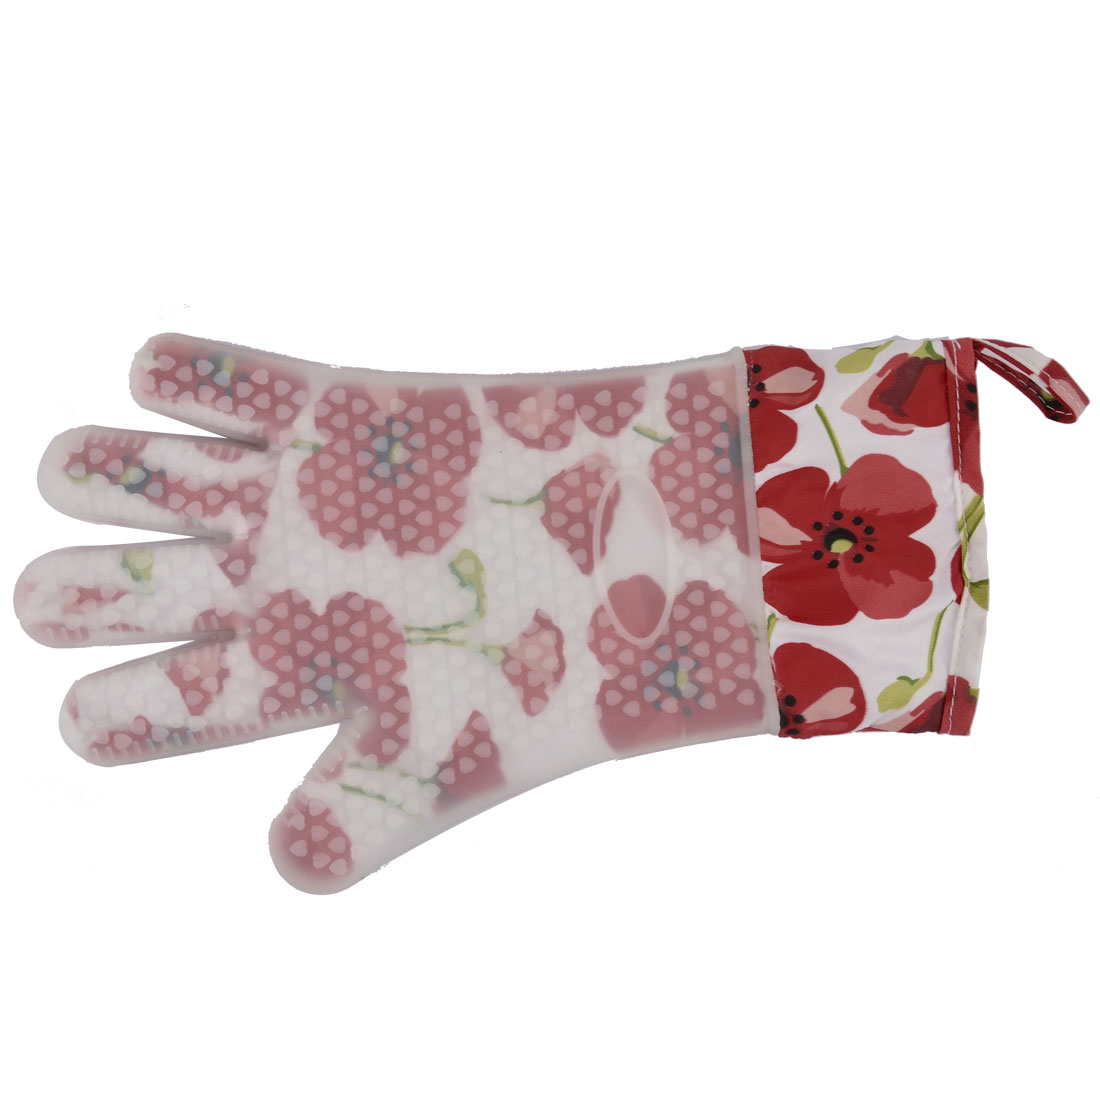 Silicone 5-Finger Flower Pattern Camping BBQ Heat Resistant Oven Mitt Glove